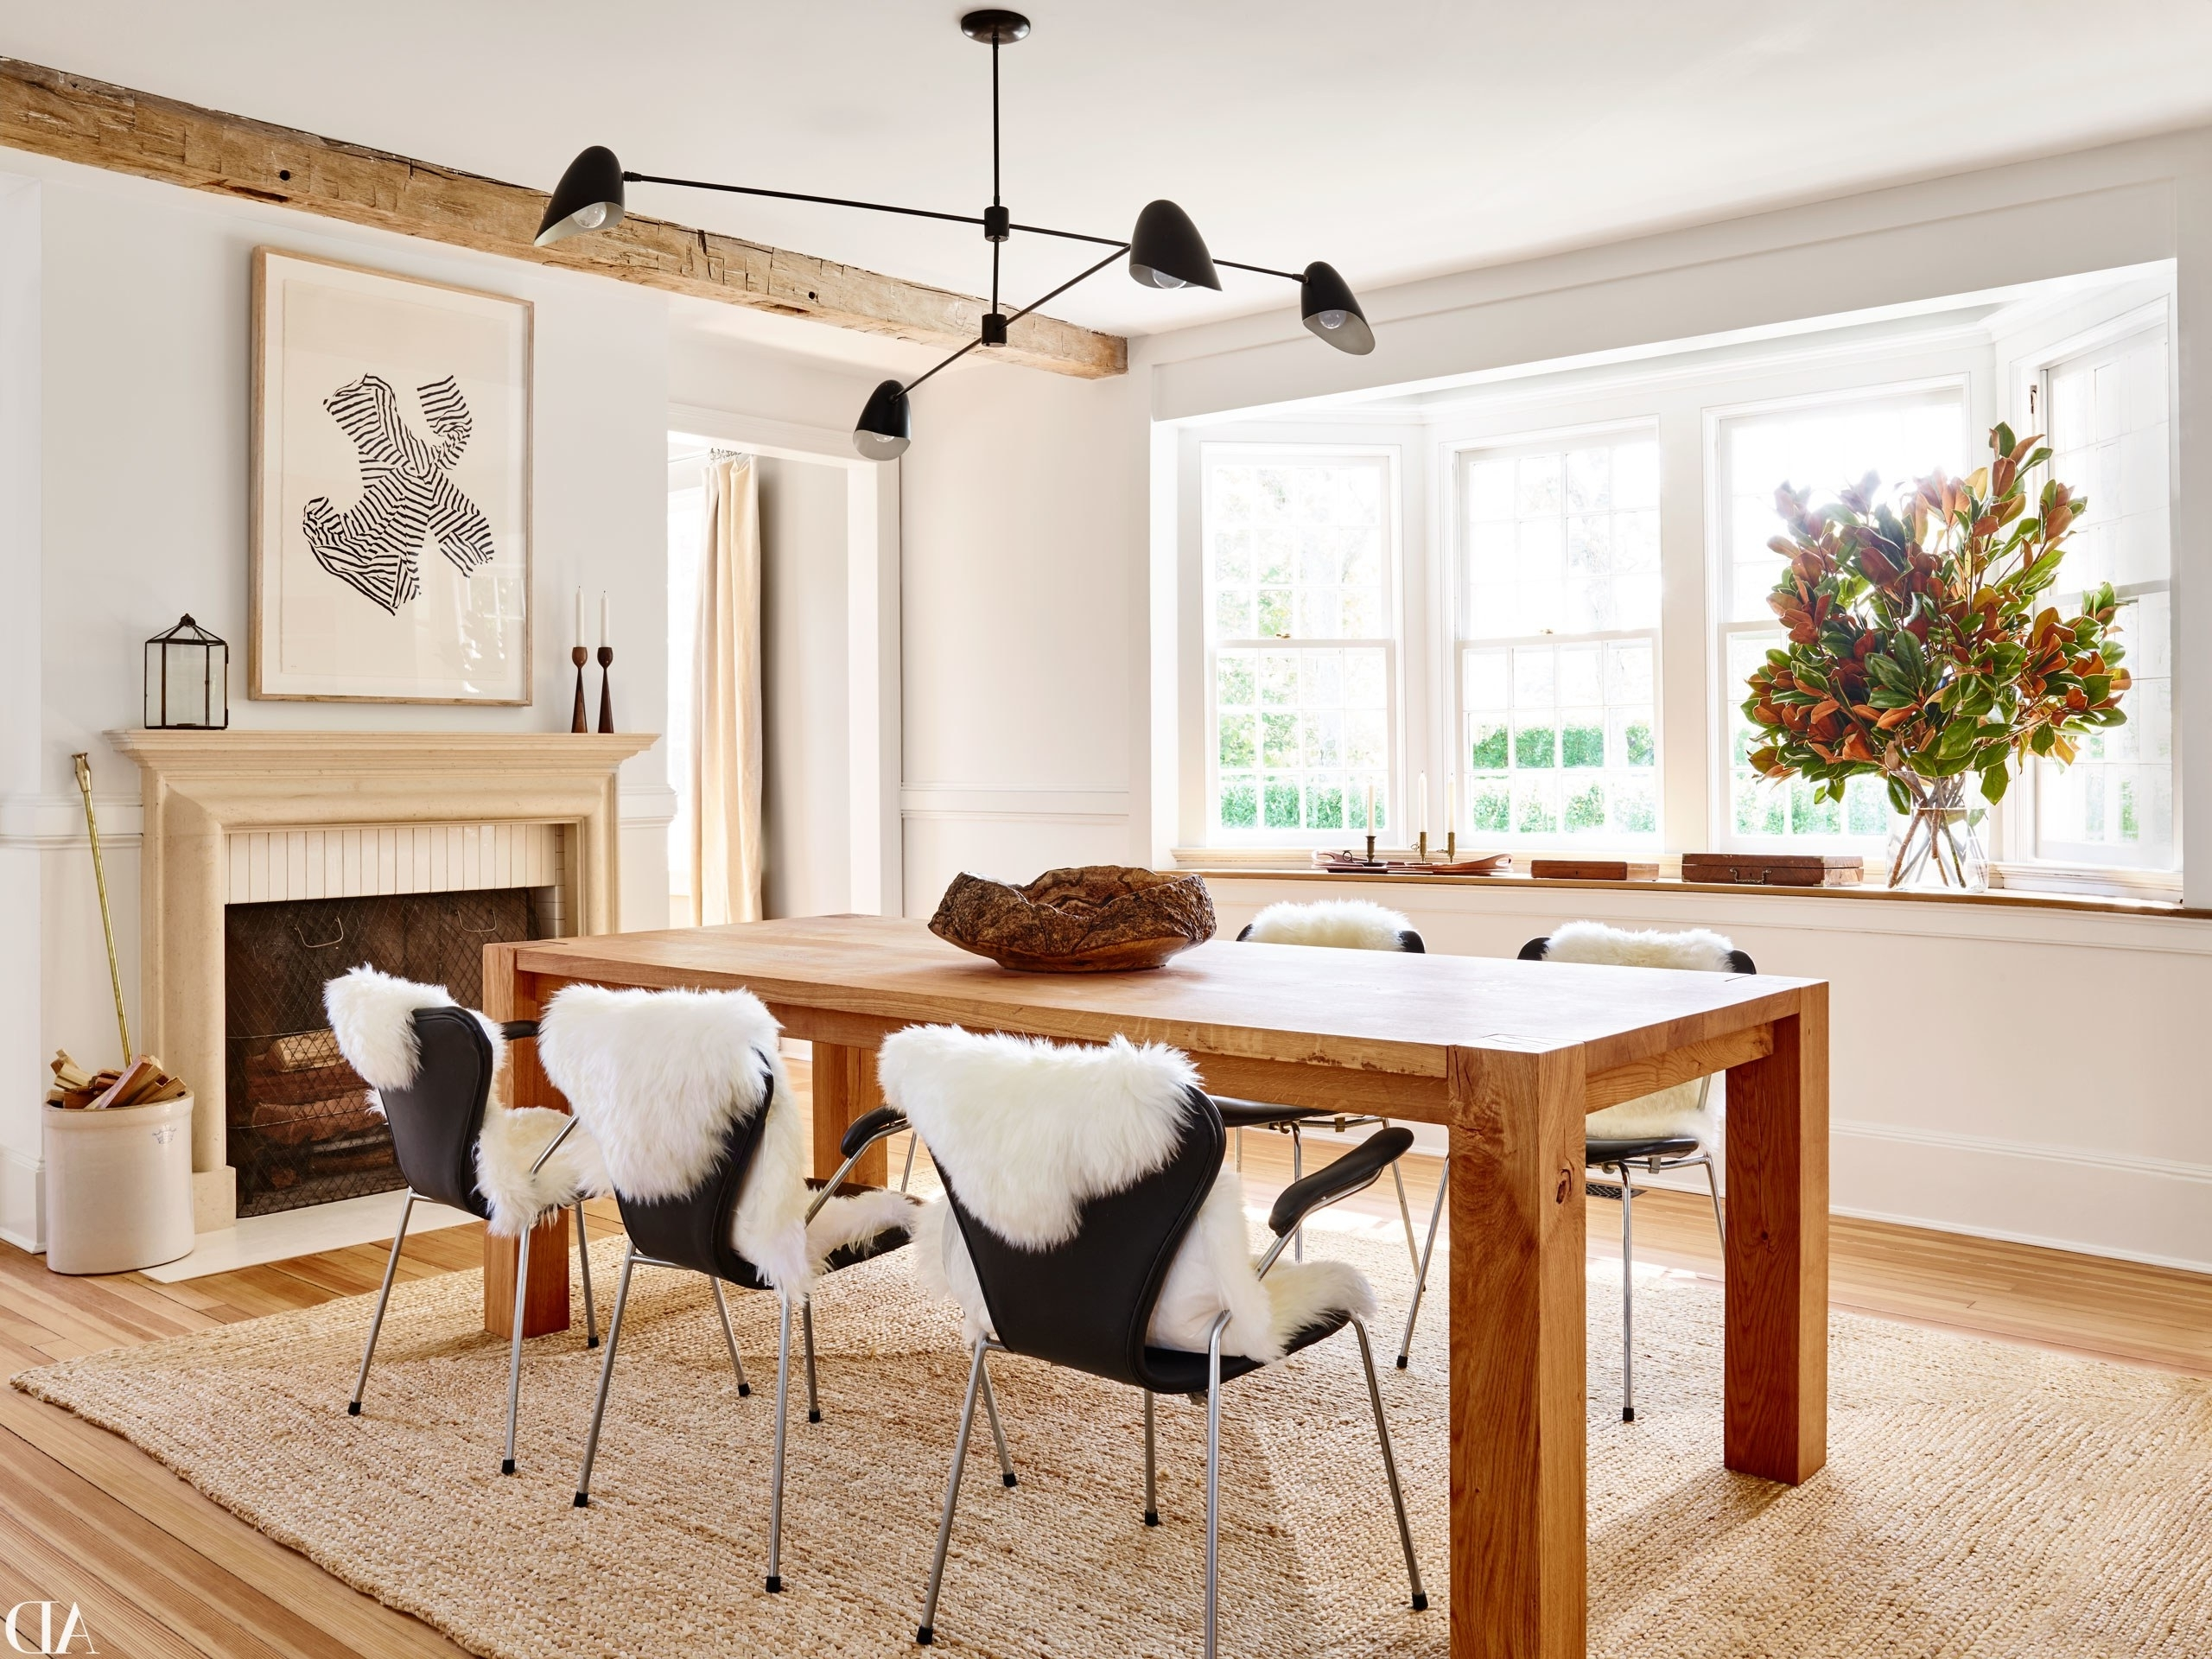 36 Of The Best Dining Rooms Of 2016 Photos (View 1 of 25)